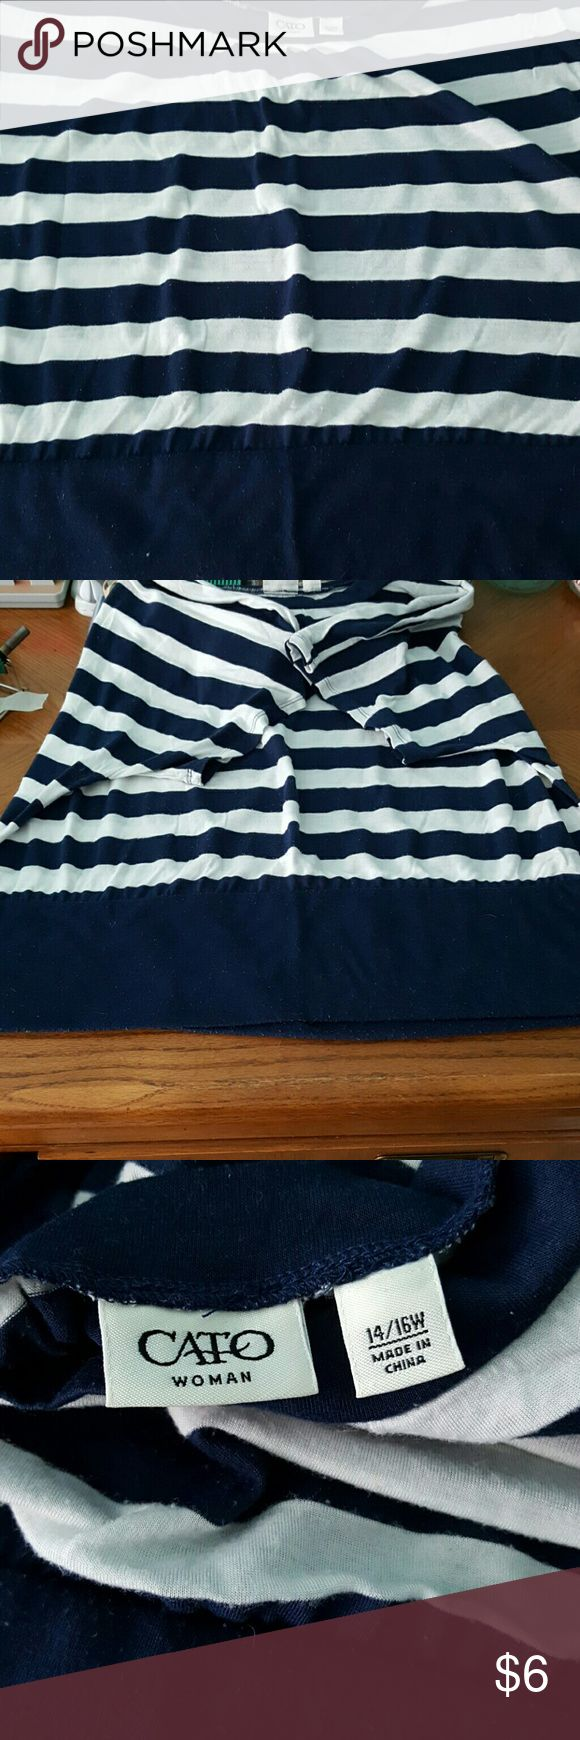 Women's Top Cute Blue and White top size 14-16W Cato Tops Blouses